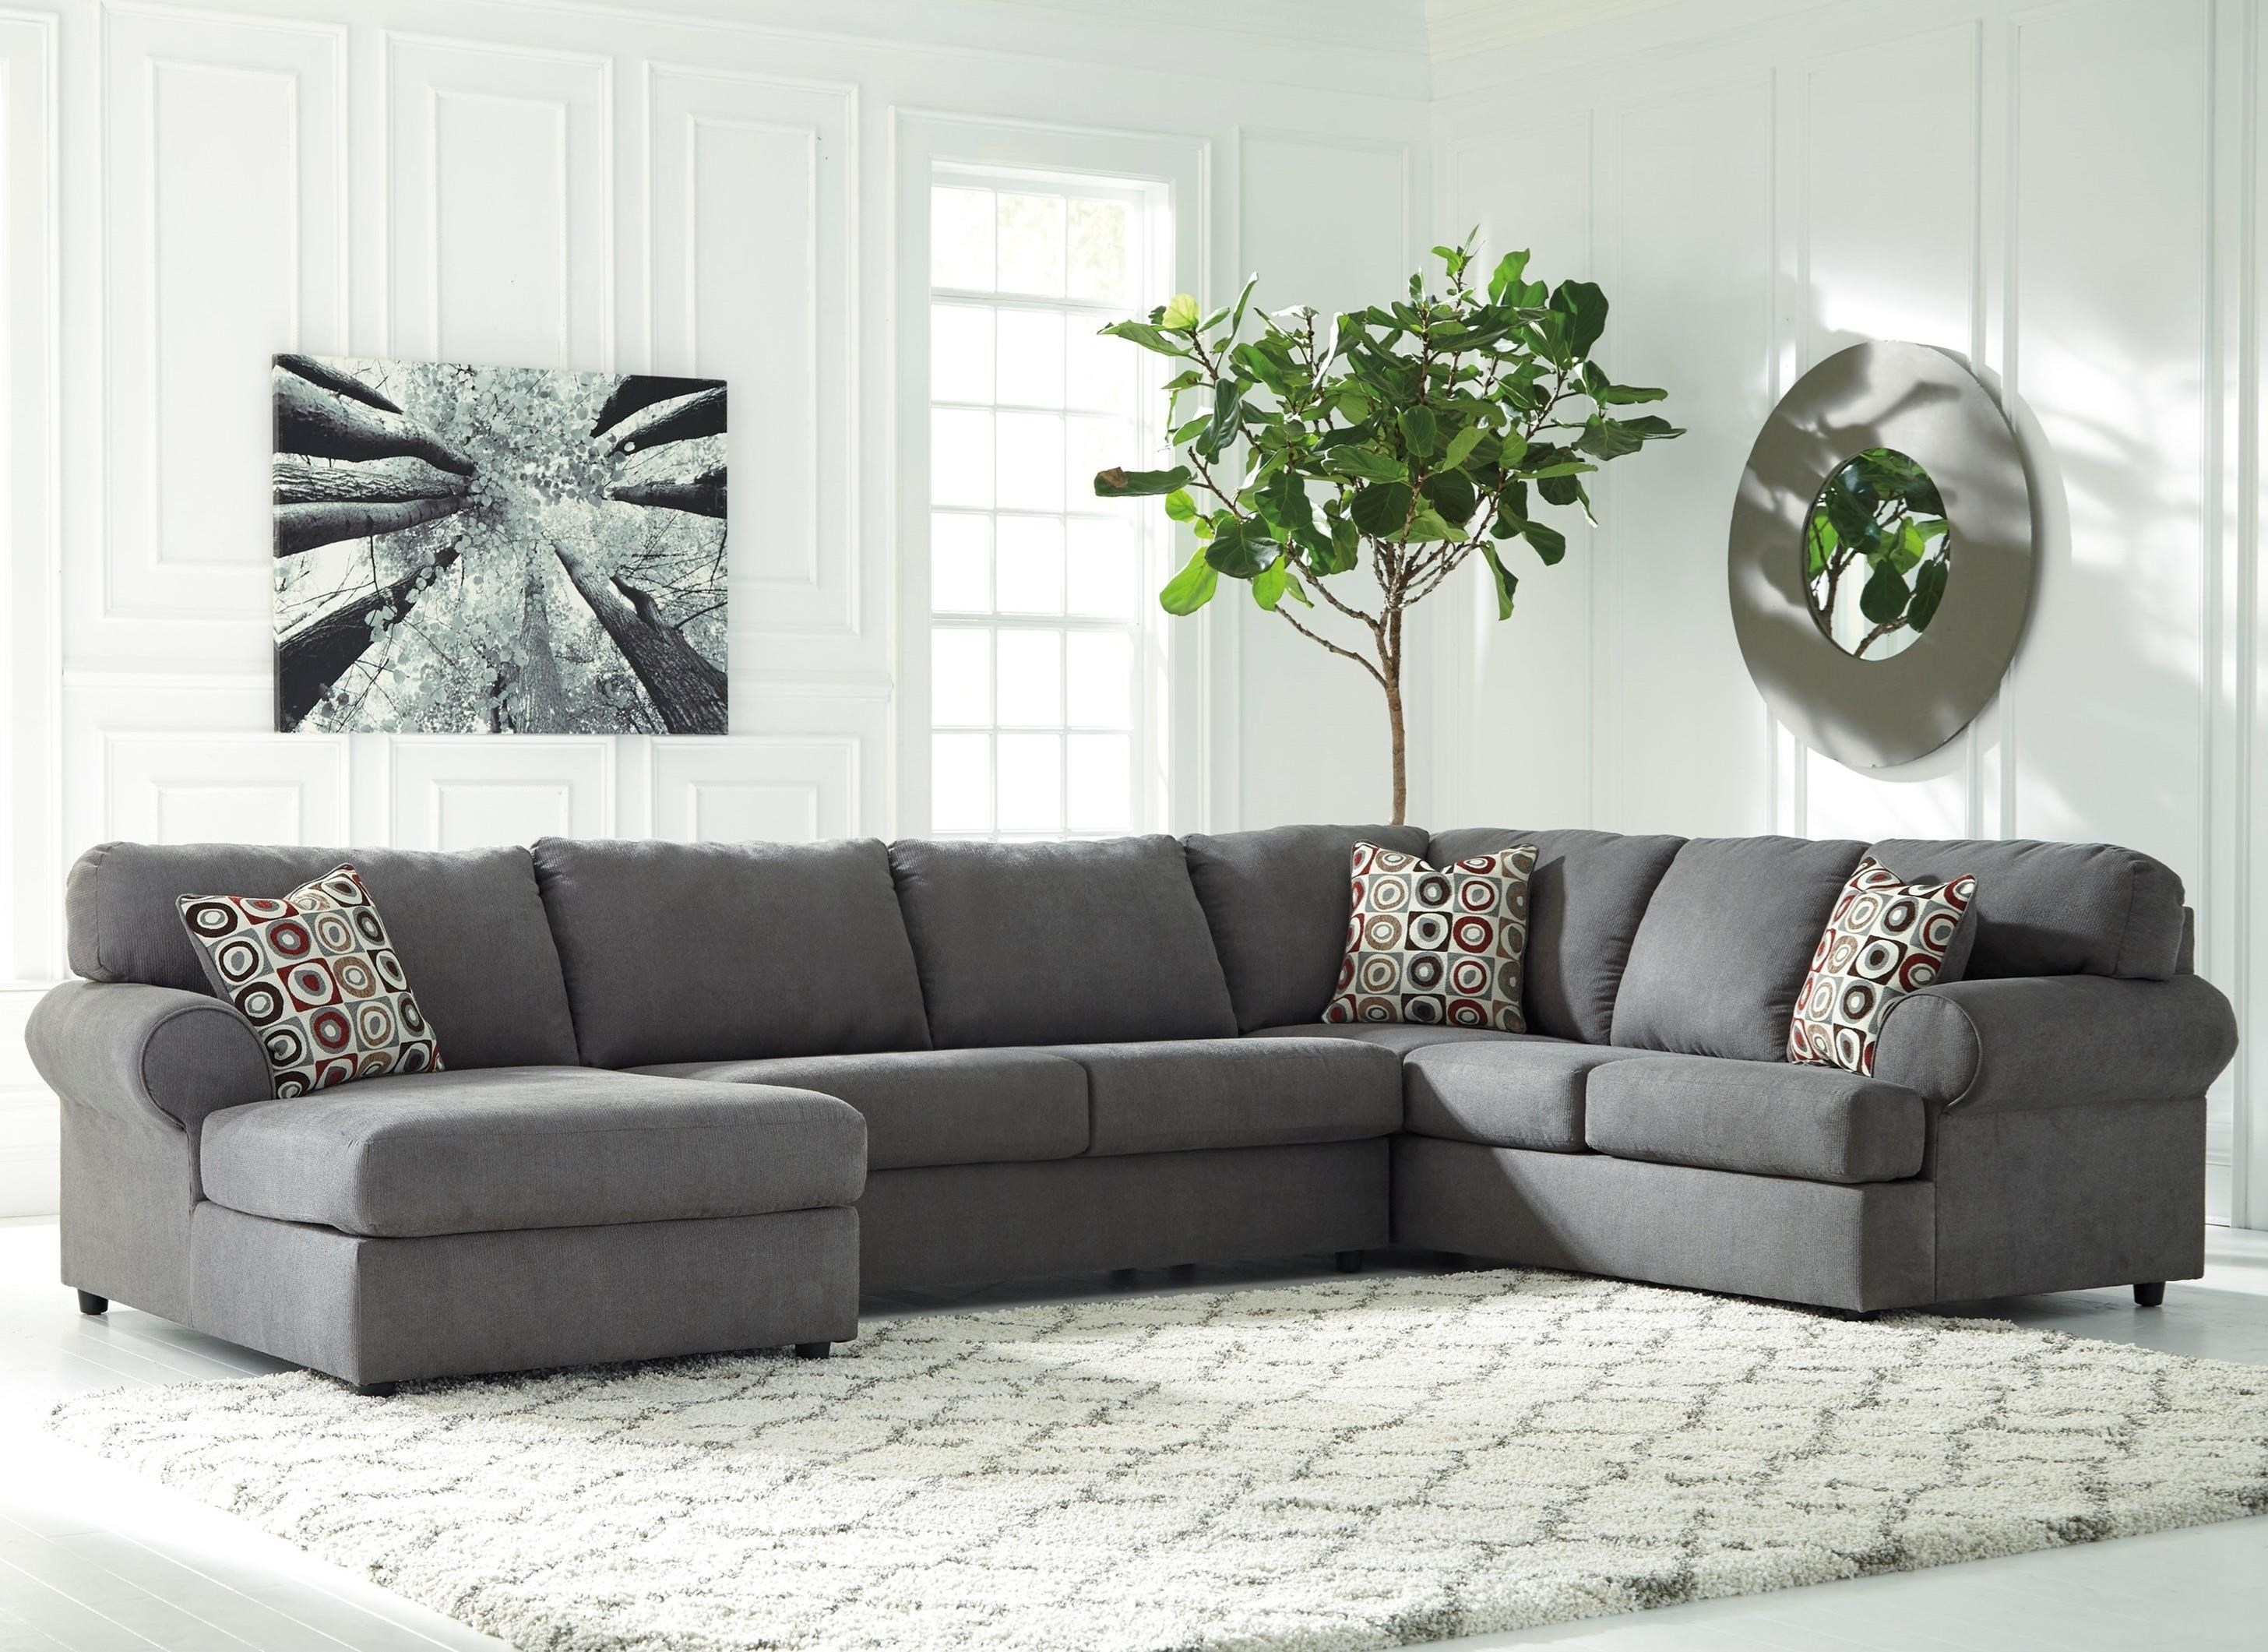 Ashley (Signature Design) Jayceon 3 Piece Sectional With Left Chaise Throughout Cosmos Grey 2 Piece Sectionals With Laf Chaise (Image 2 of 25)